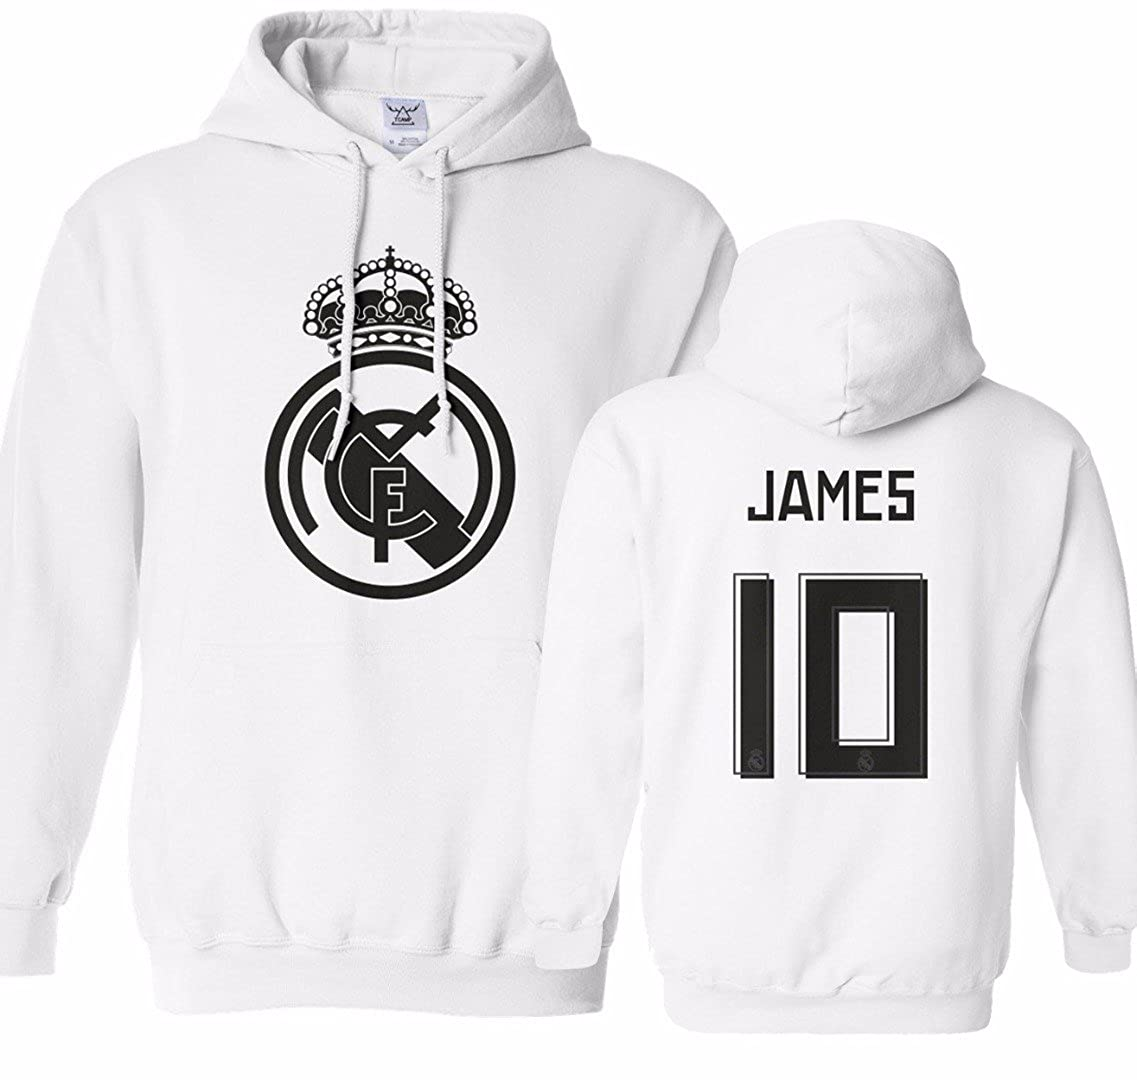 best website 381c1 c2507 Tcamp Real Madrid Shirt James Rodriguez #10 Jersey Youth ...